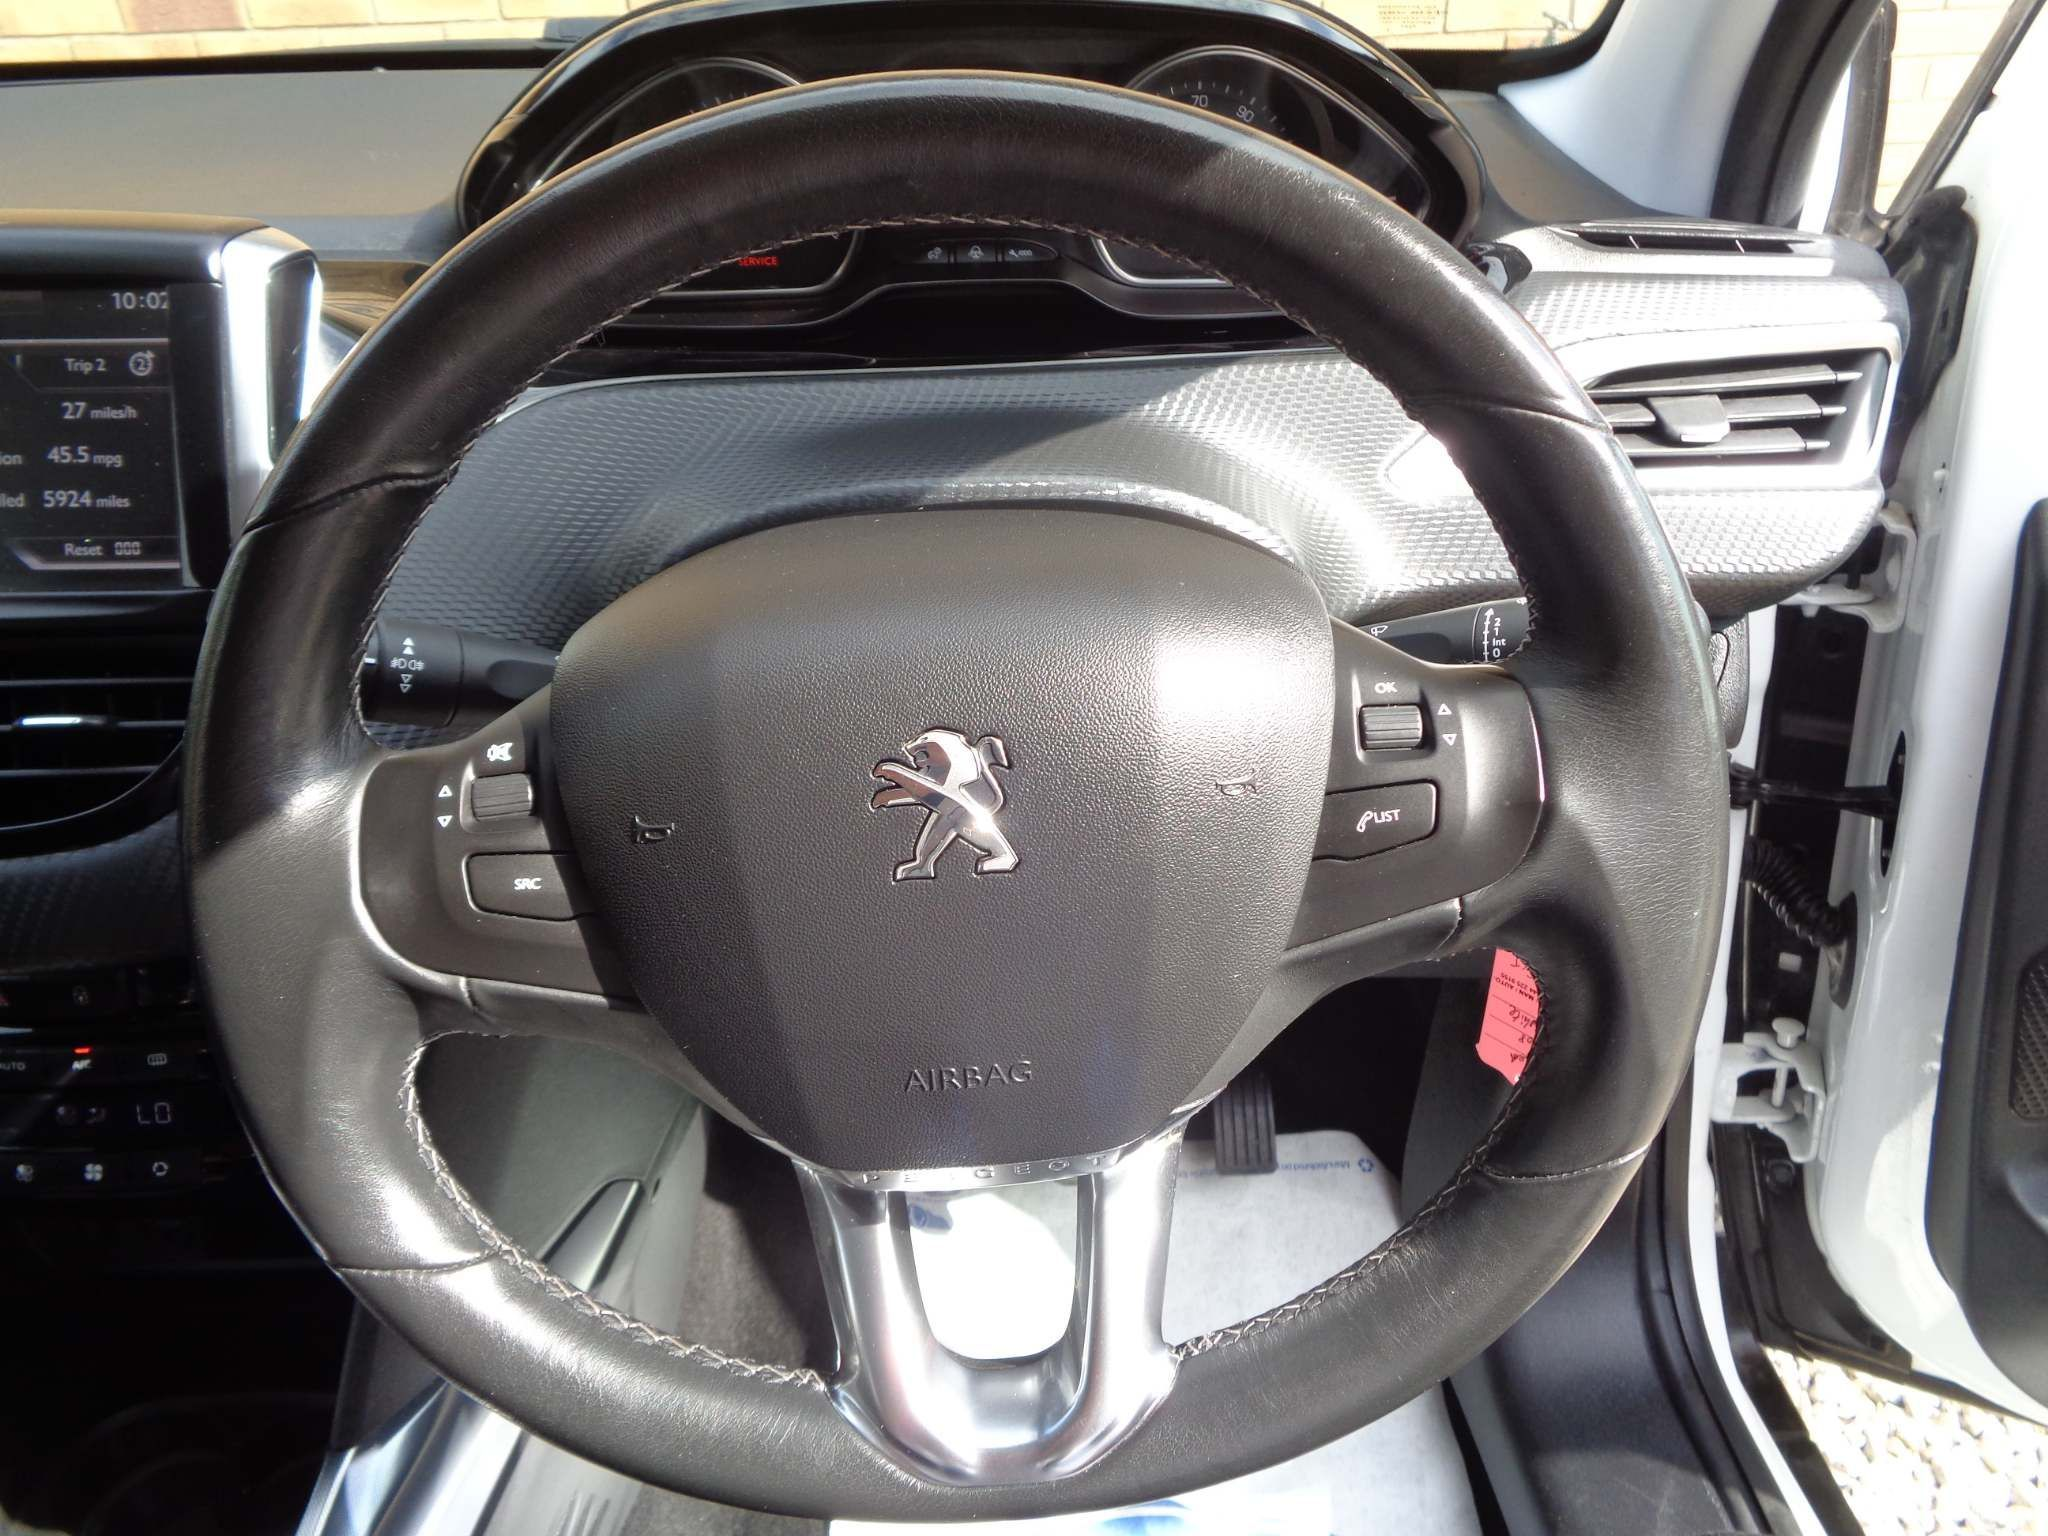 http://pictures2.autotrader.co.uk/imgser-uk/servlet/media?id=bc2a8ab7f0444ce5812e6cb2d2d1100f